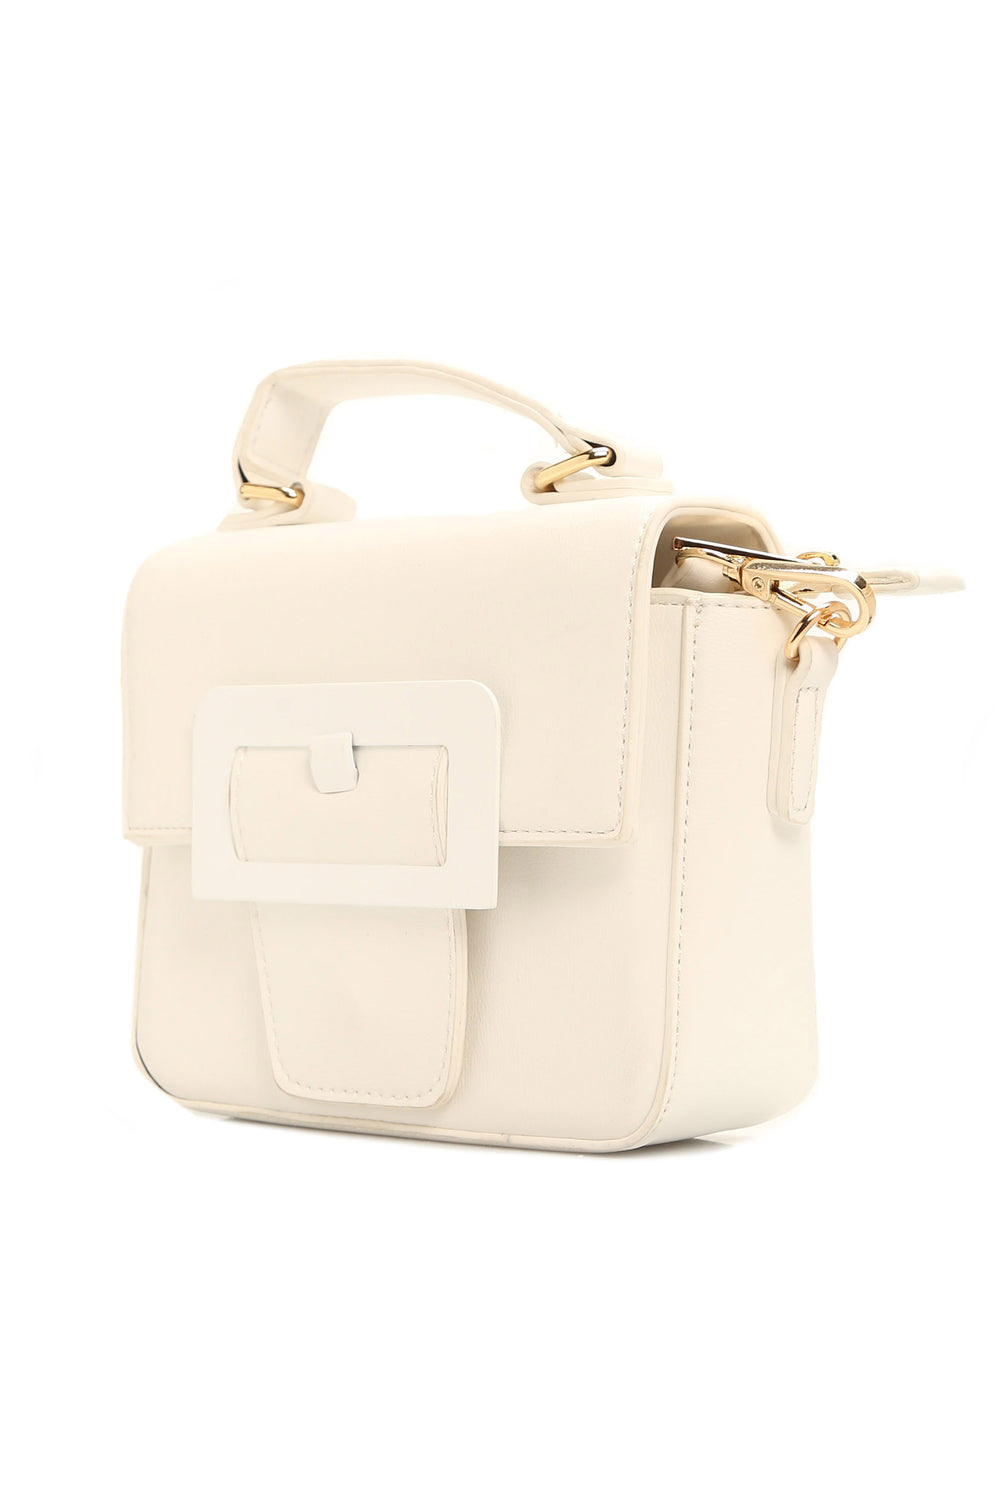 Buckle Up Crossbody Bag - White